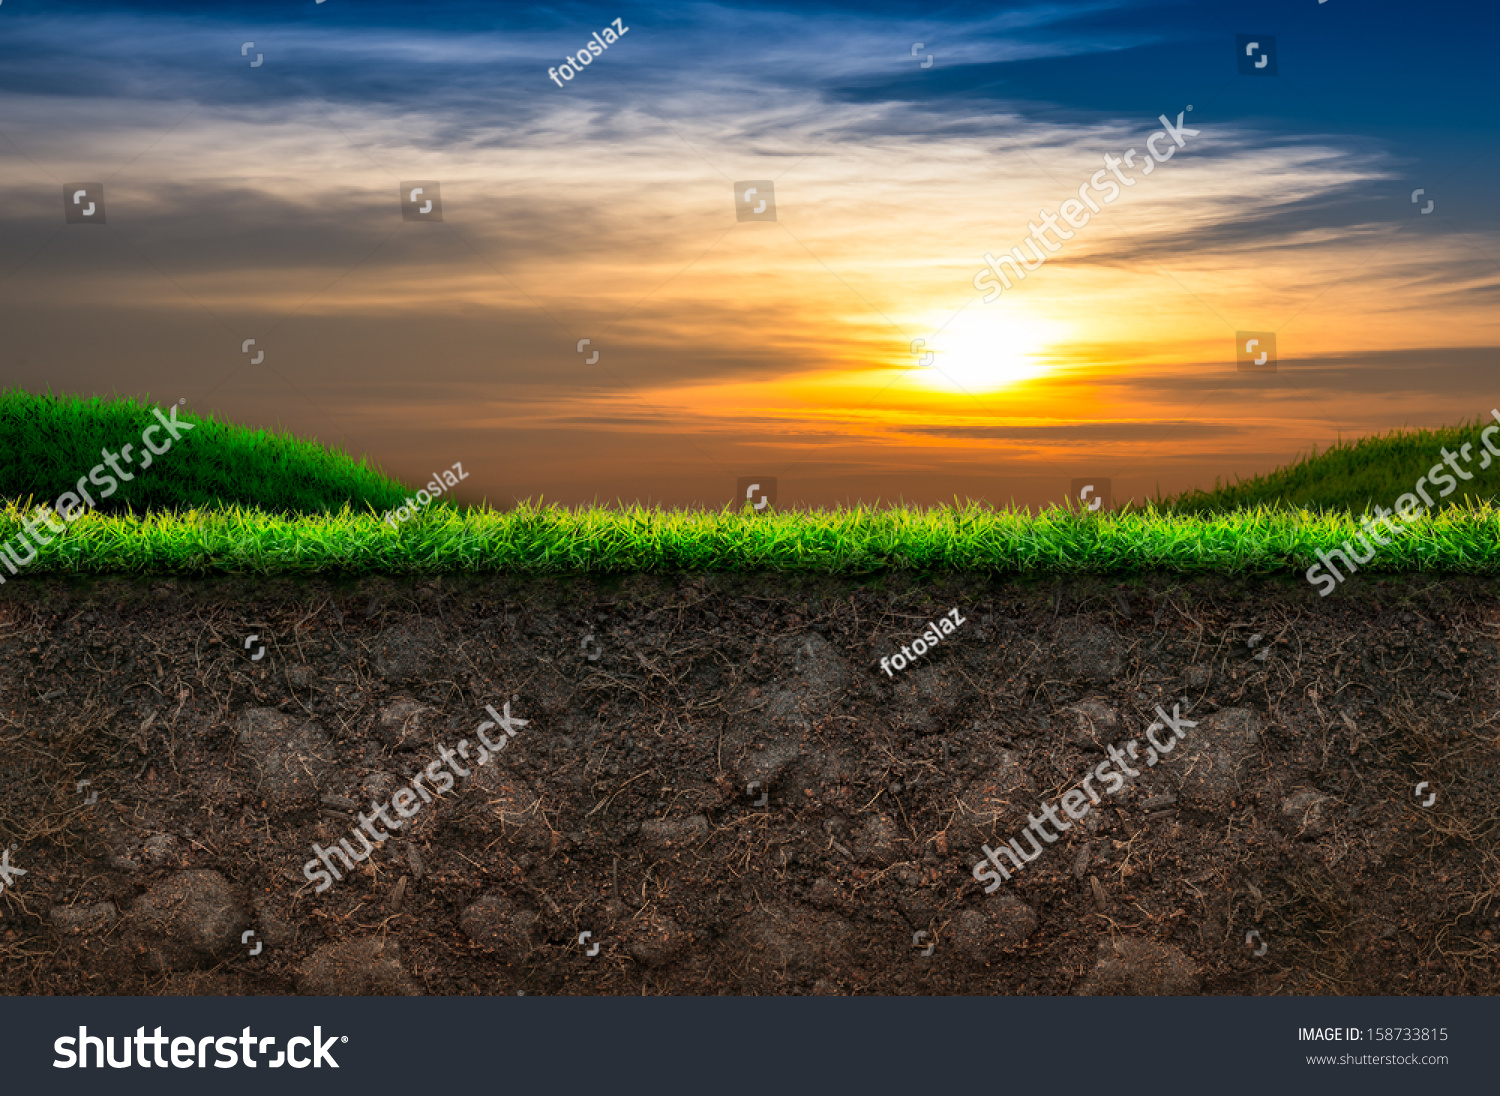 Soil and green grass in sunset background stock photo for Soil and green